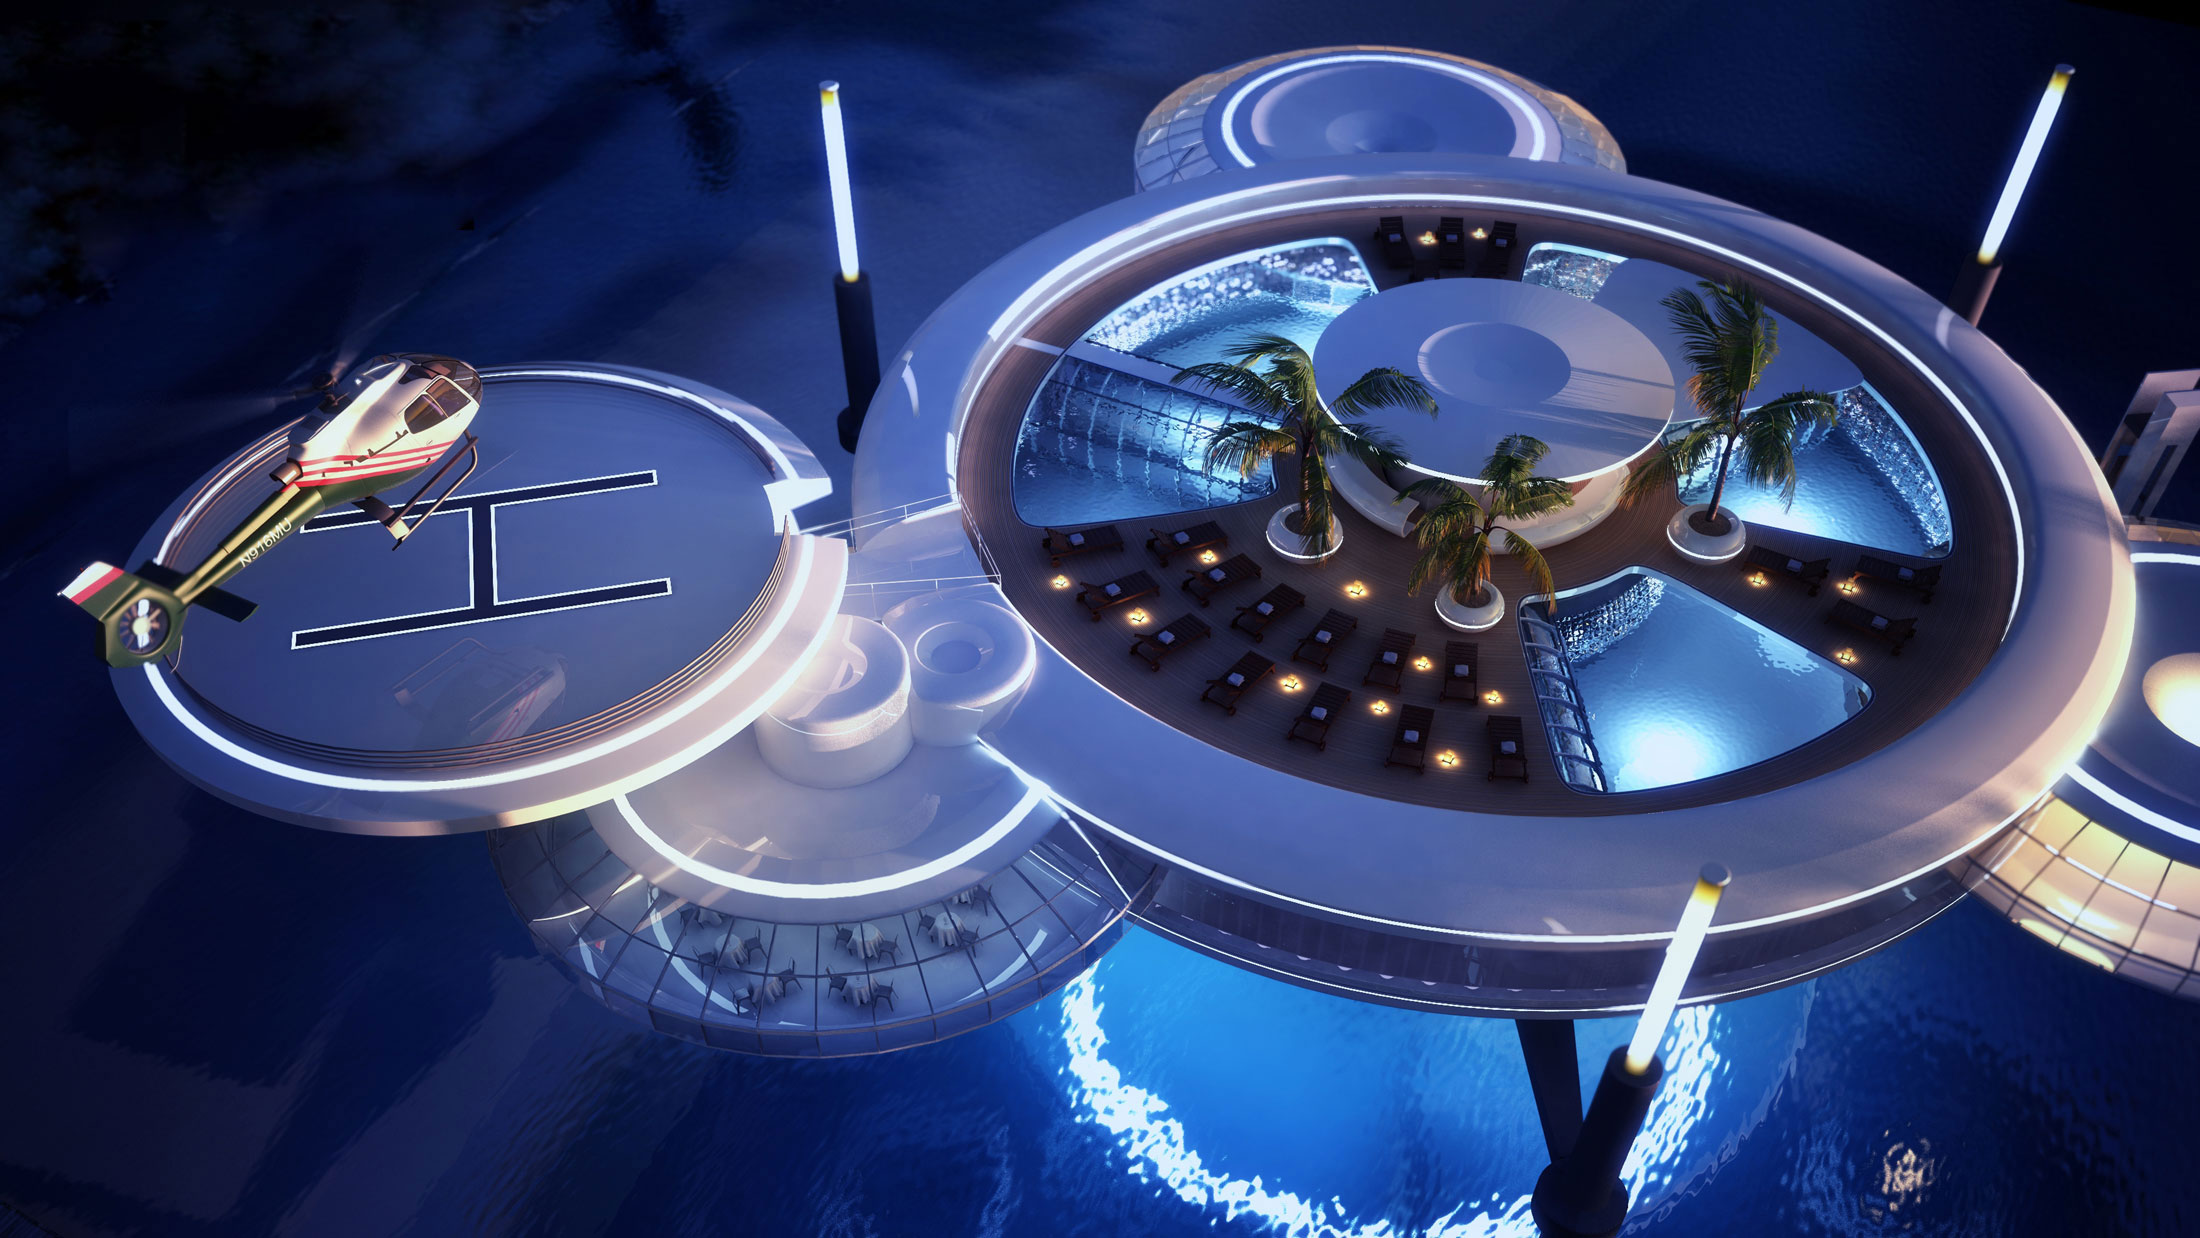 The Water Discus Underwater Hotel planned for Dubai (5)